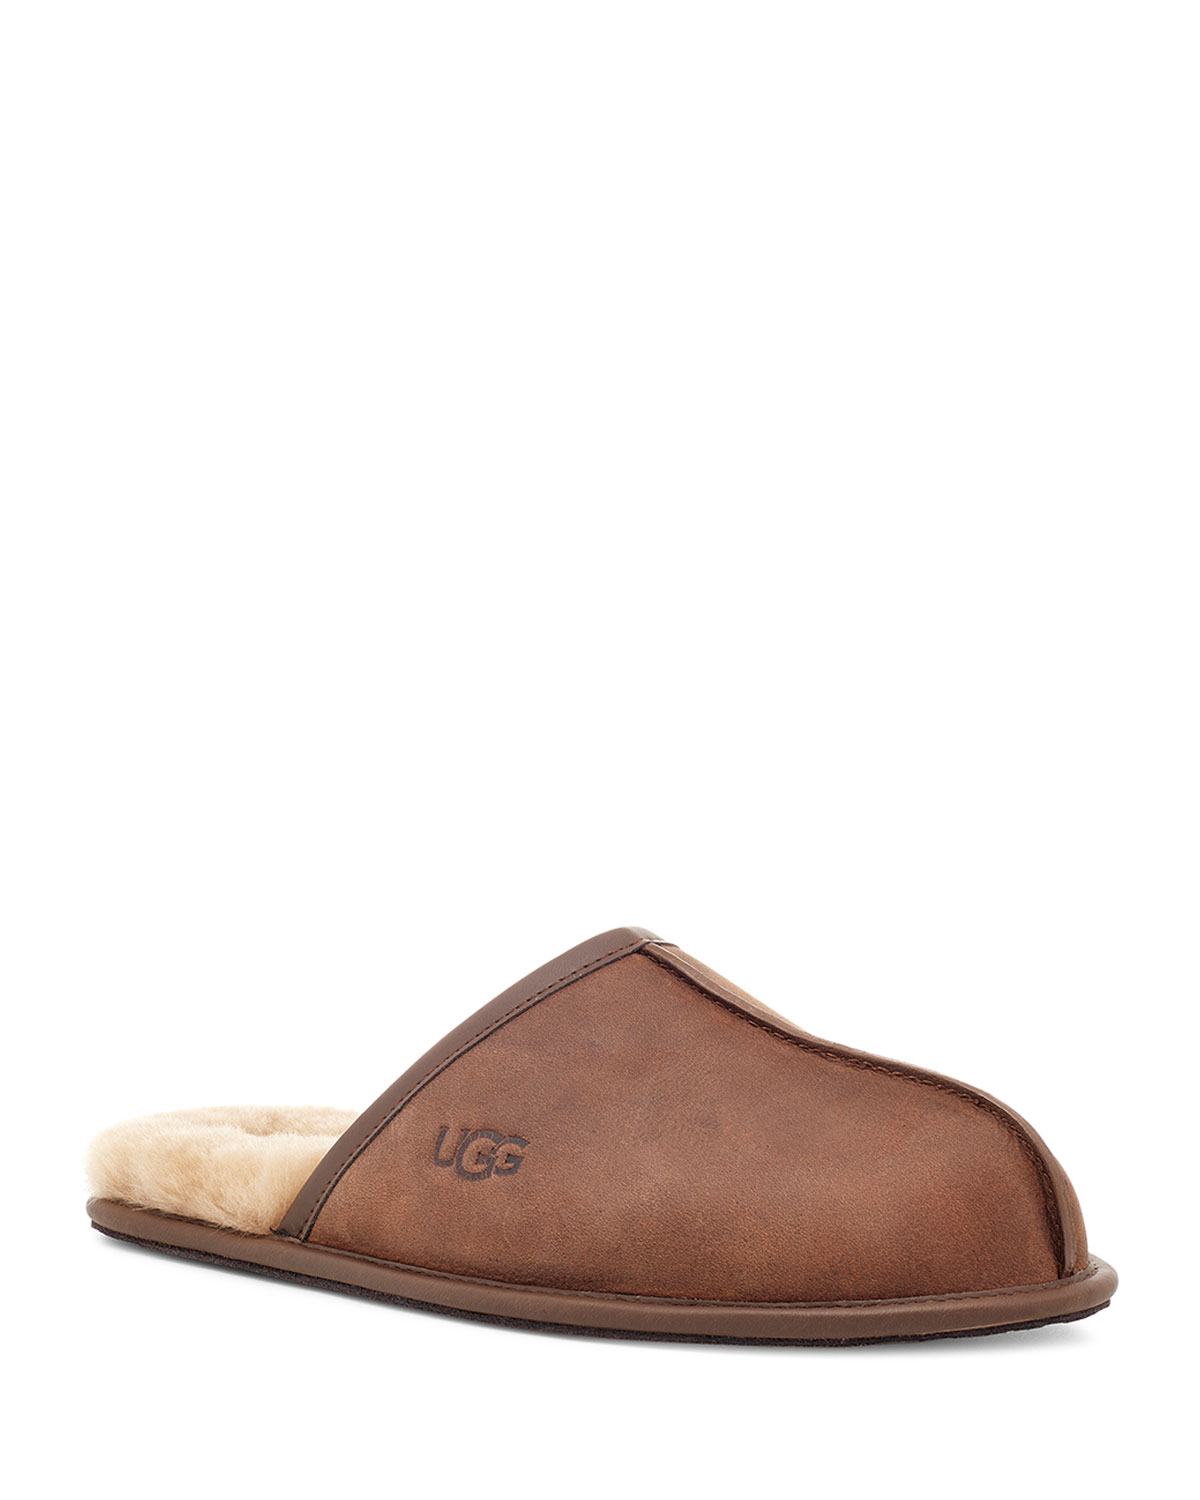 Ugg Slippers MEN'S SCUFF LEATHER MULE SLIPPERS W/ WOOL LINING